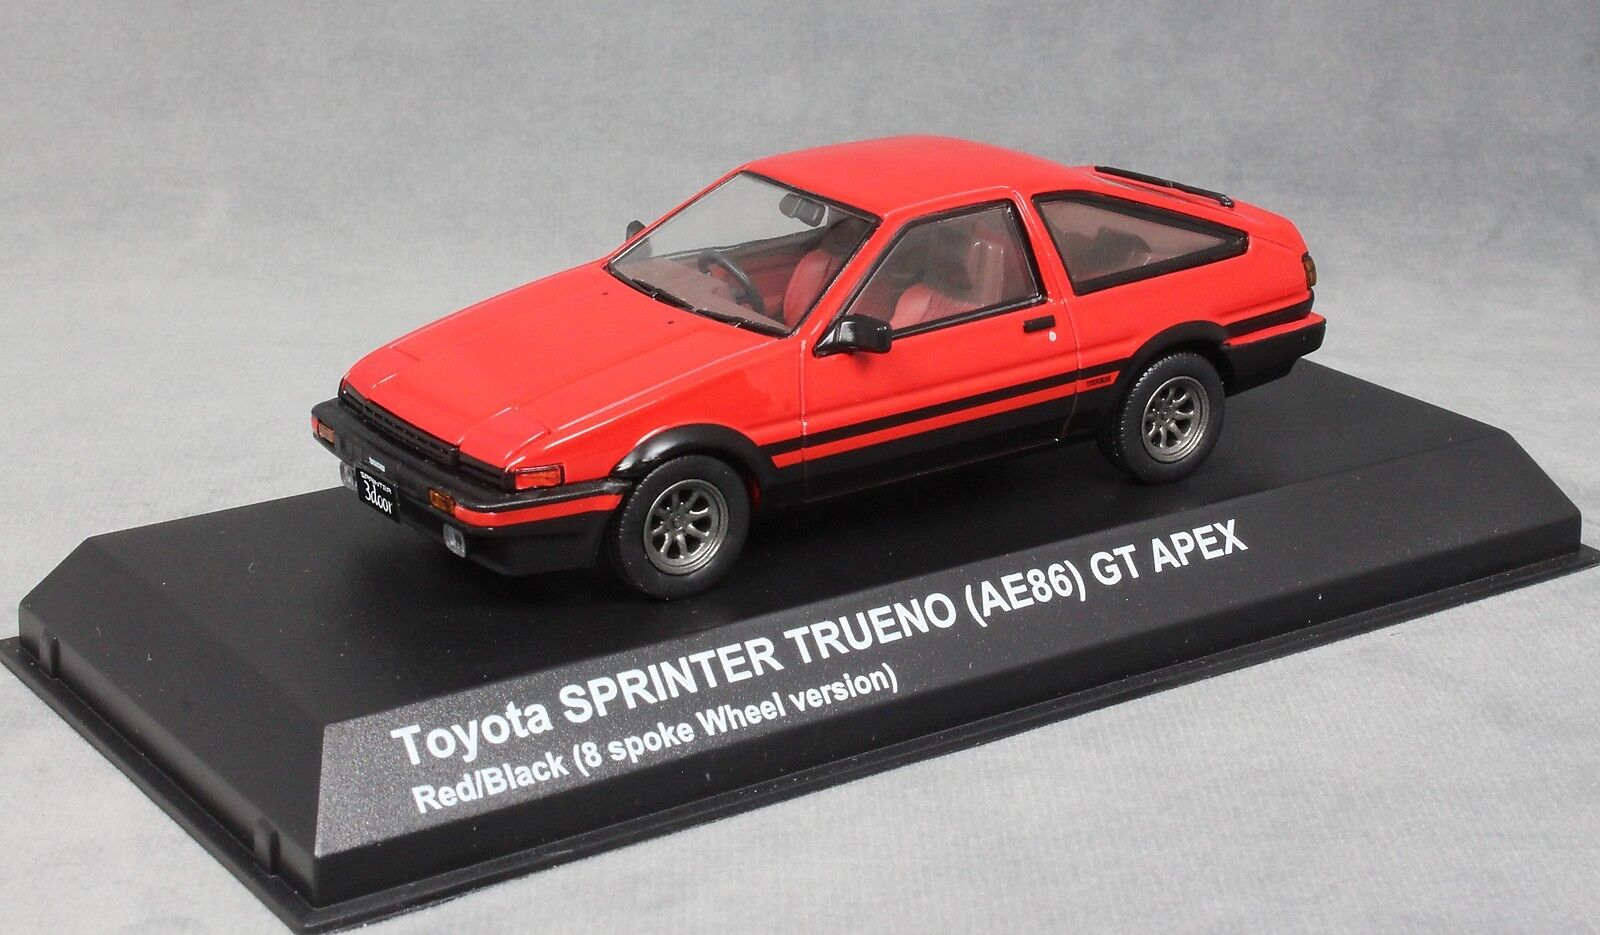 Kyosho Toyota Sprinter Trueno (Cgoldlla AE86) GT Apex  in Red 03892R 1 43 NEW